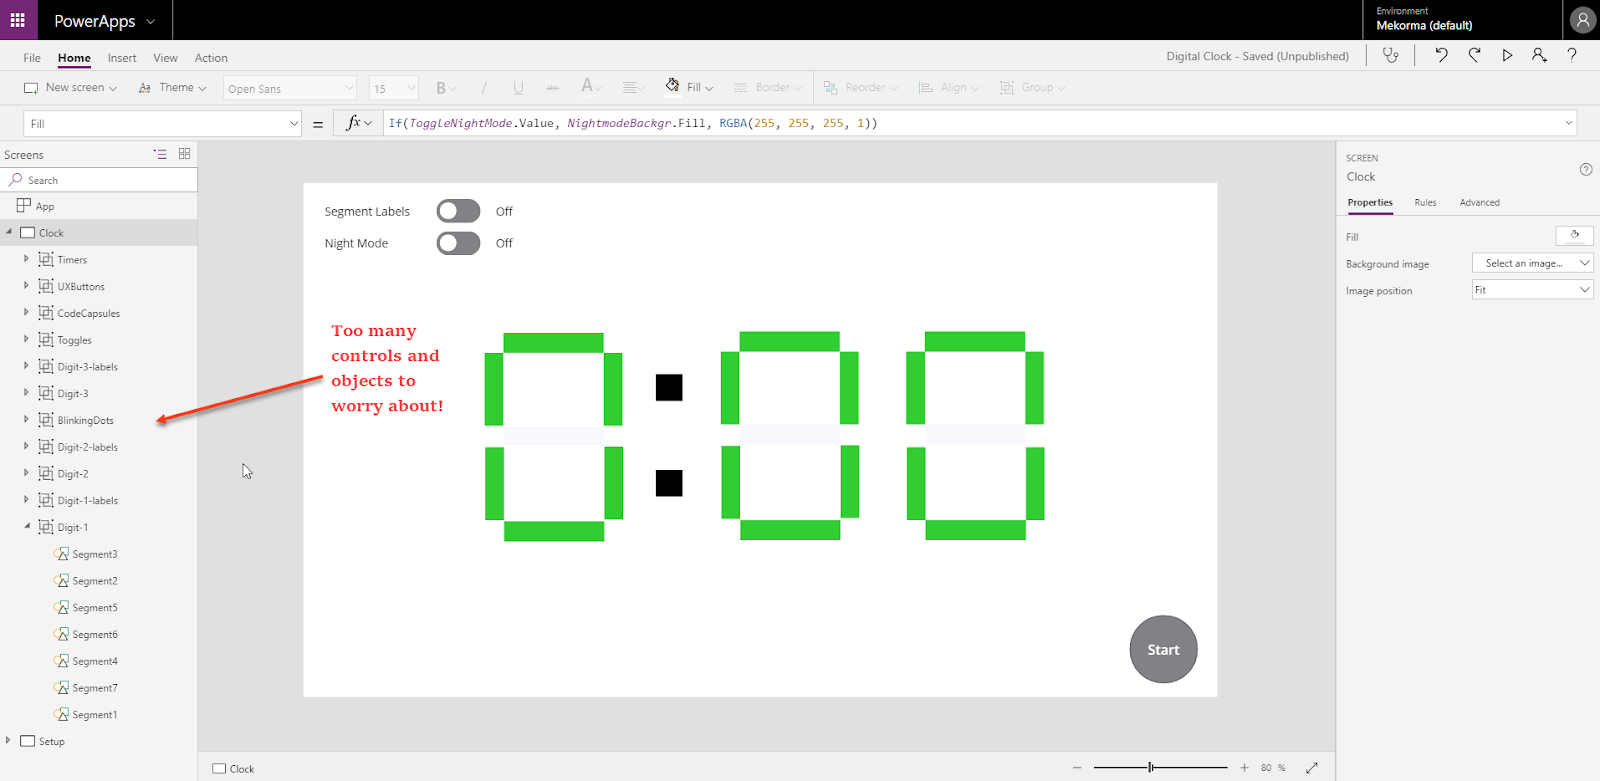 PowerApps: Using Components to create a Digital Clock - Part